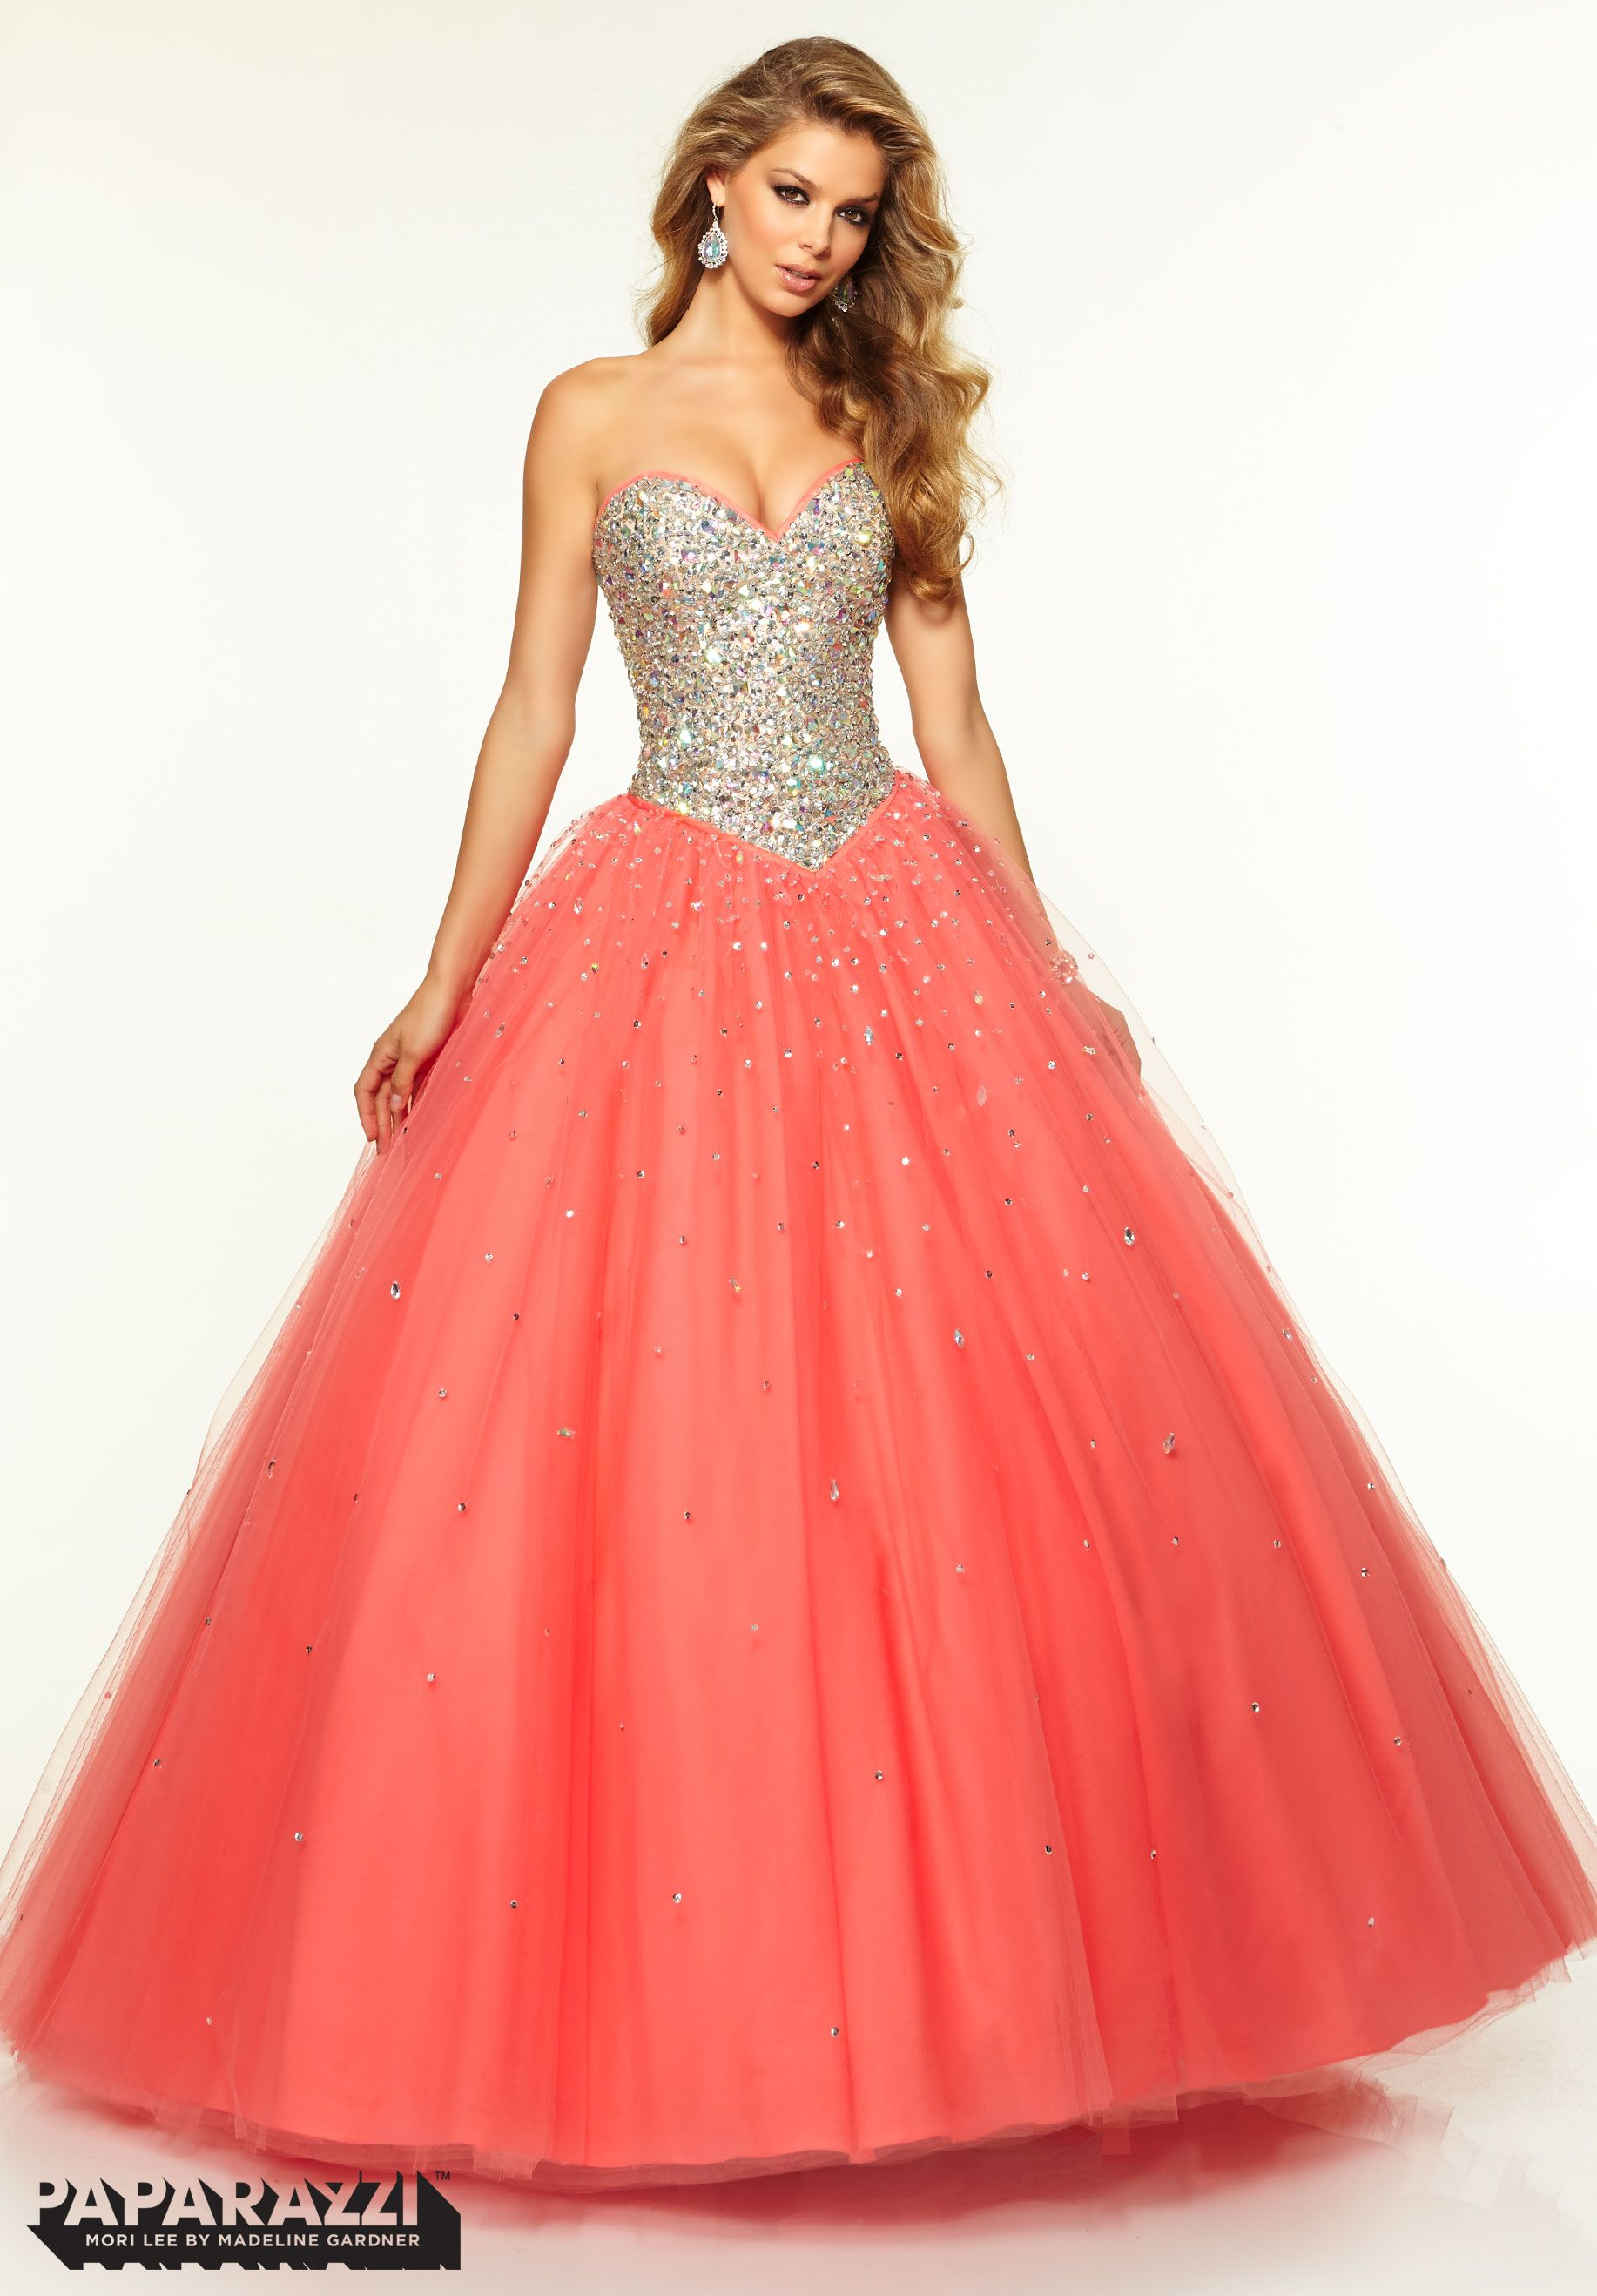 Prom dresses gowns style jeweled beaded bodice with satin